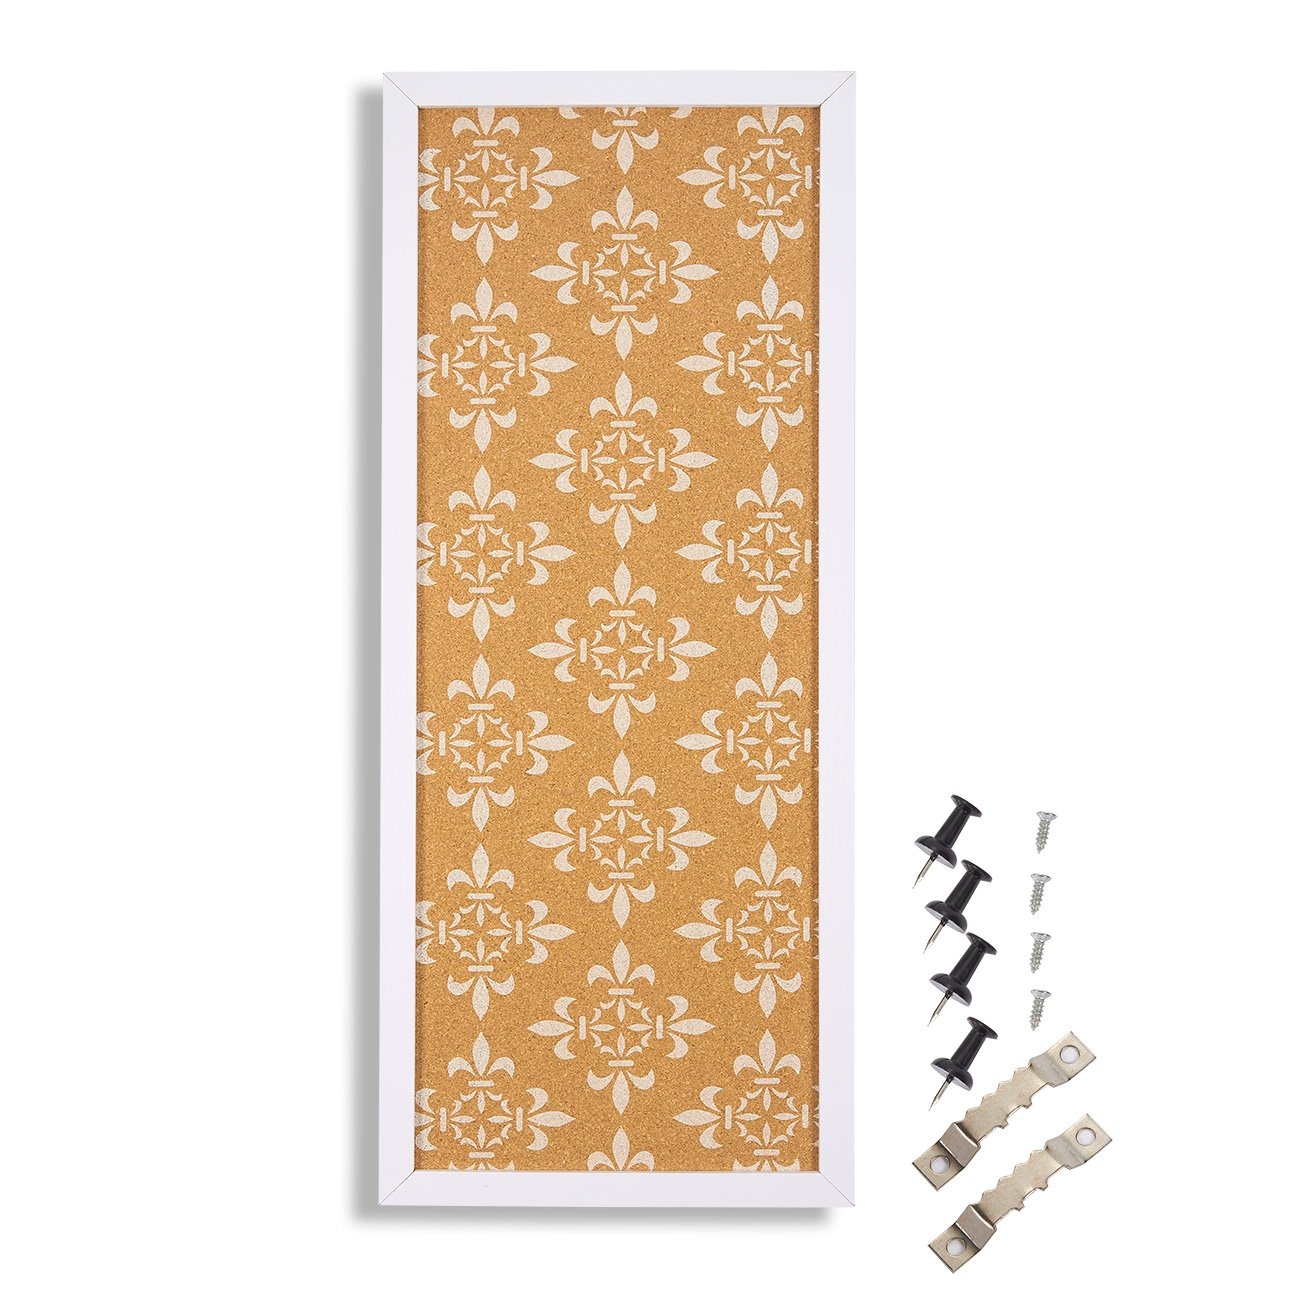 Cork Bulletin Board - Decorative Framed Corkboard Wall Decorwith White Floral Print - Perfect for Pinning Memos and Reminders - White, 23.7 x 9.7 x 0.6 inches Juvale